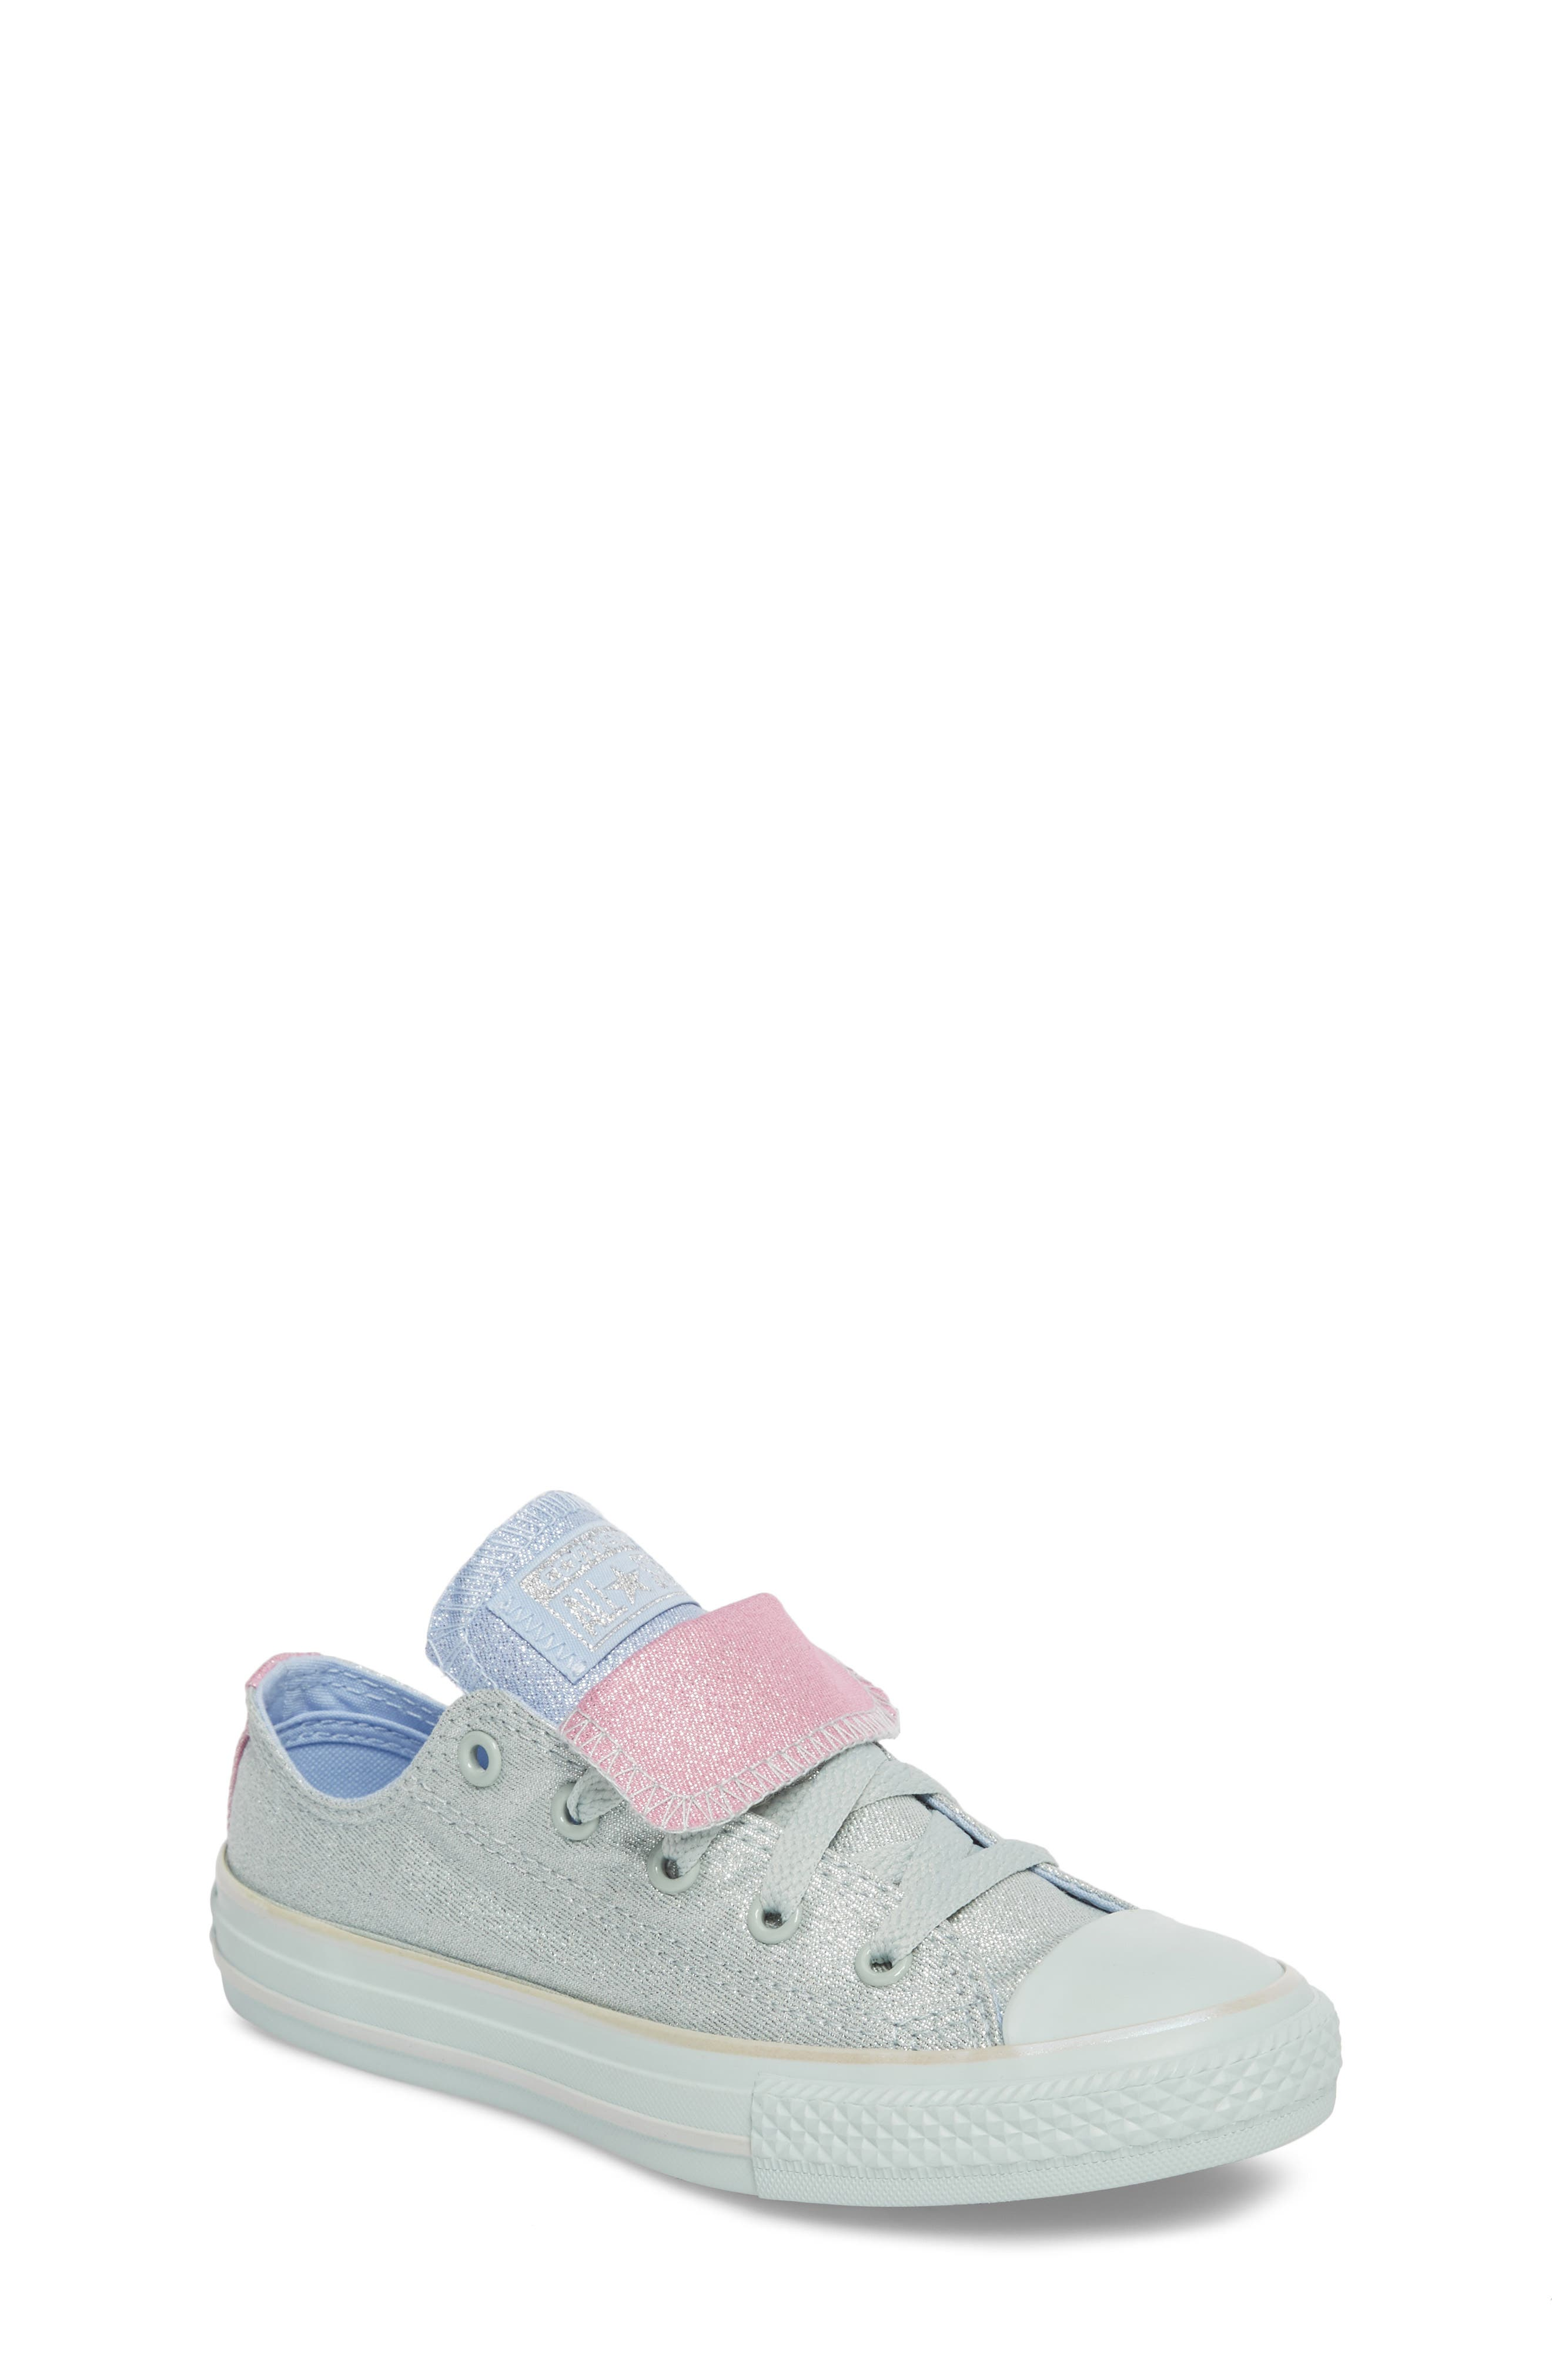 All Star<sup>®</sup> Shimmer Double Tongue Sneaker,                         Main,                         color, 301